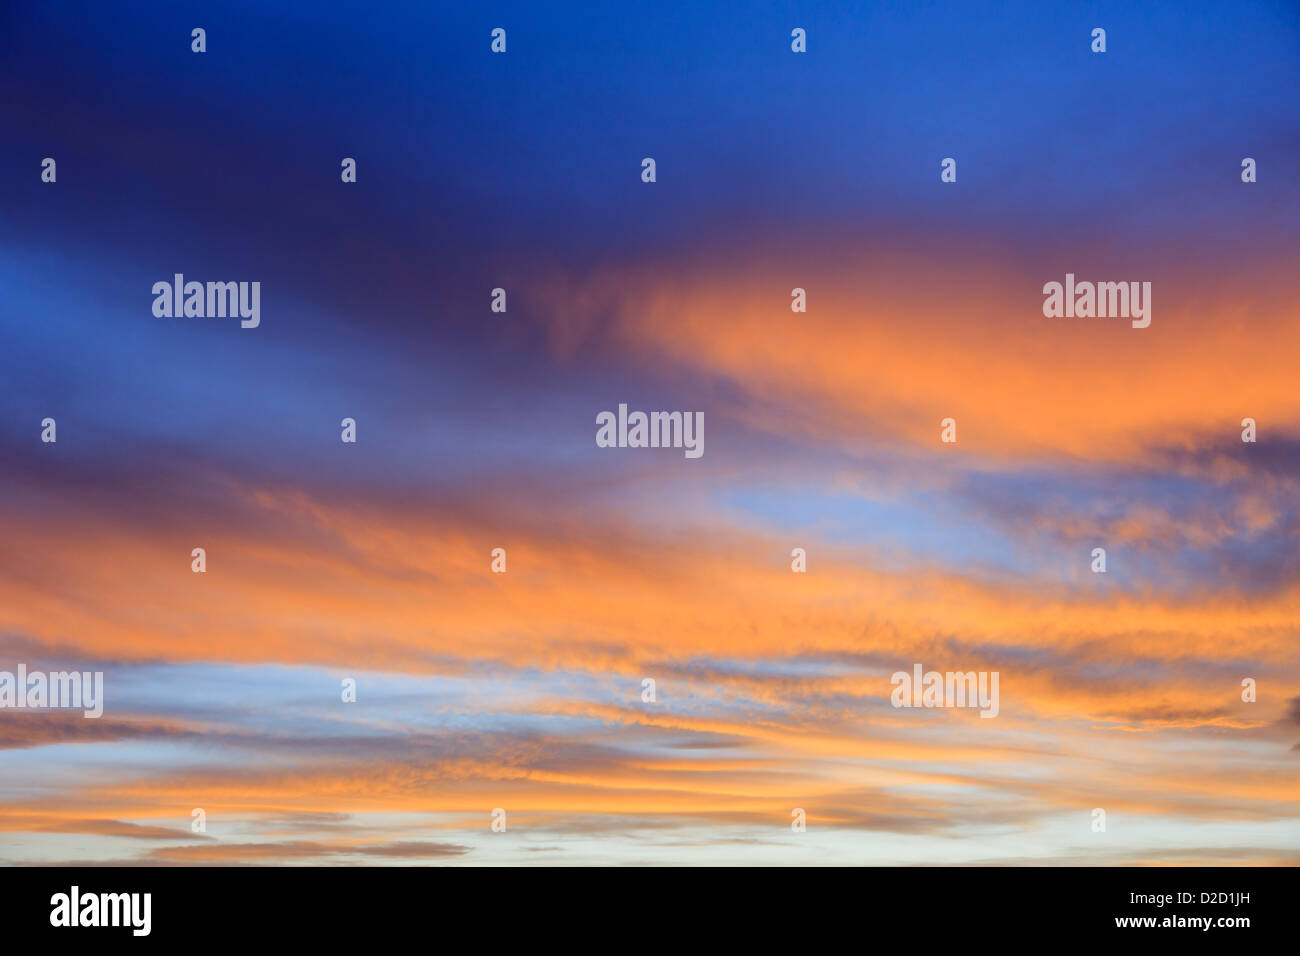 Fiery September evening skyscape with clouds lit by the orange sunset against a darkening blue sky at sundown. England - Stock Image